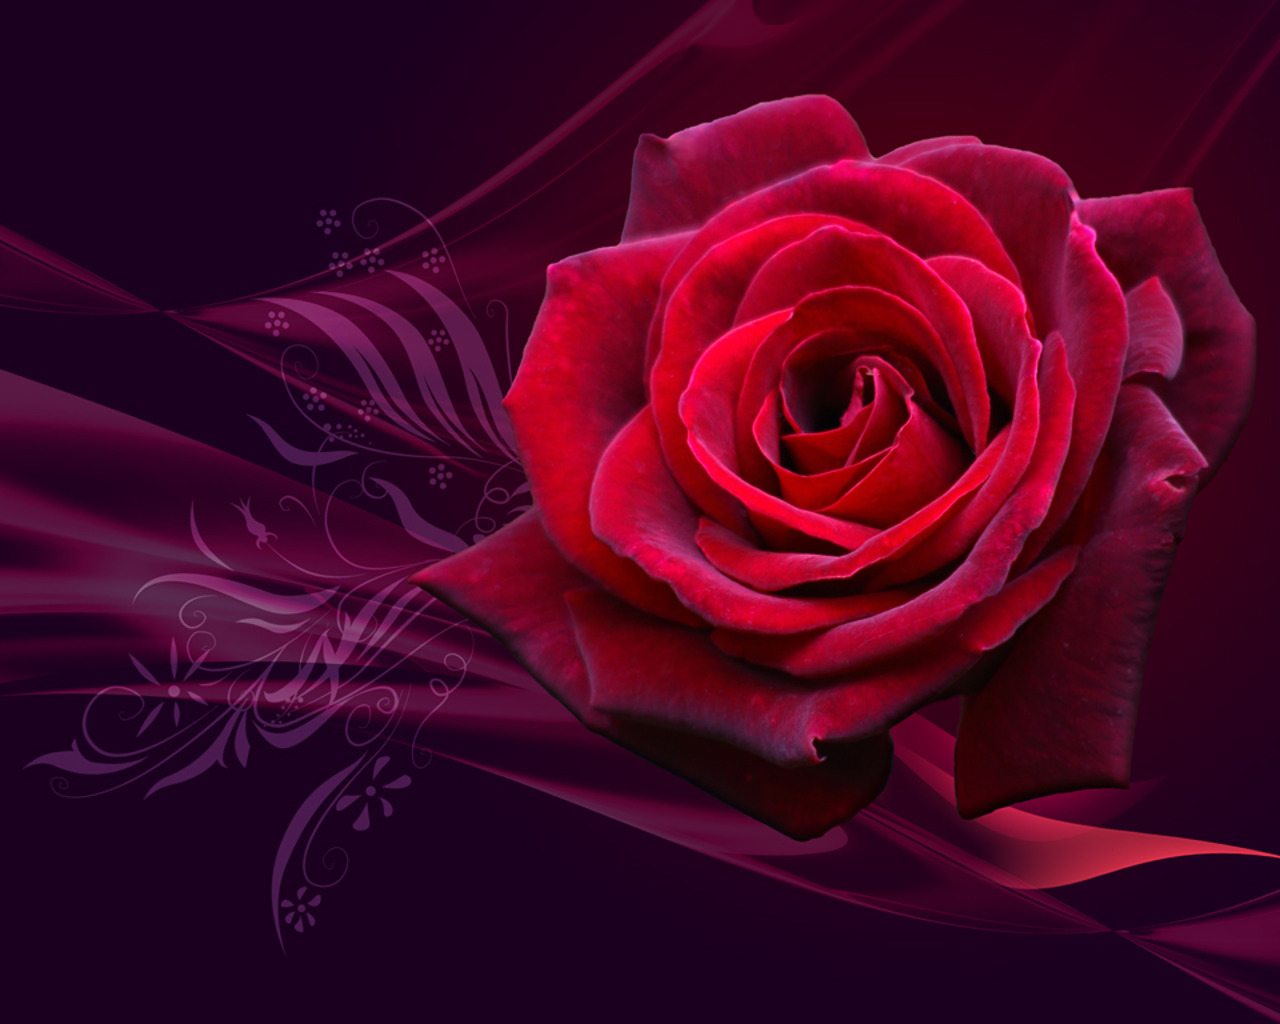 red roses wallpapers - photo #6